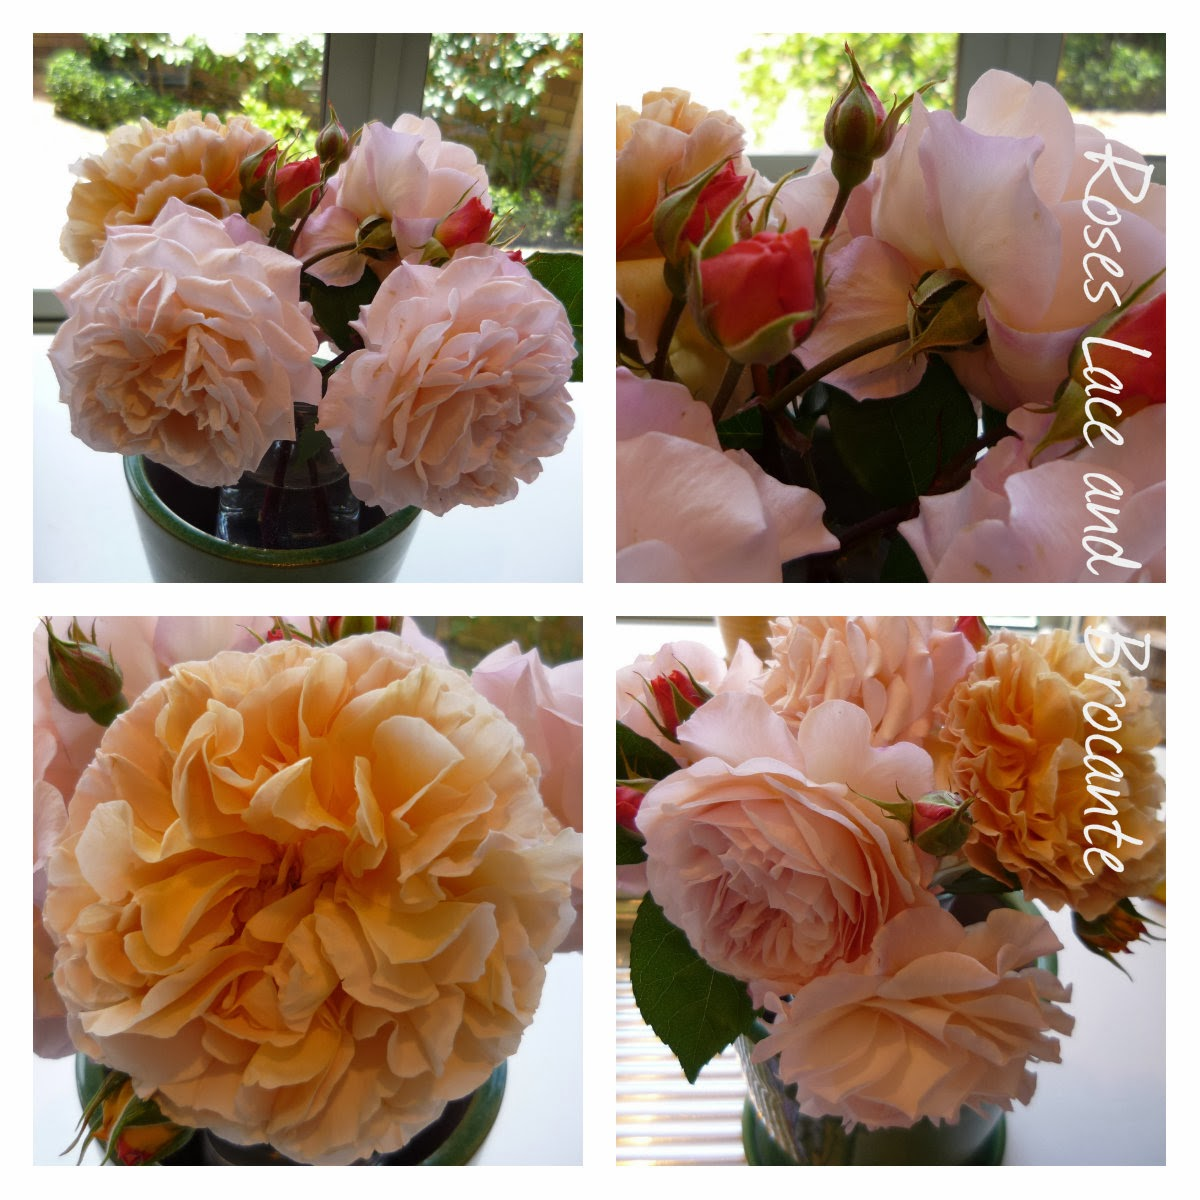 Roses Lace and Brocante Fresh Cut Friday March